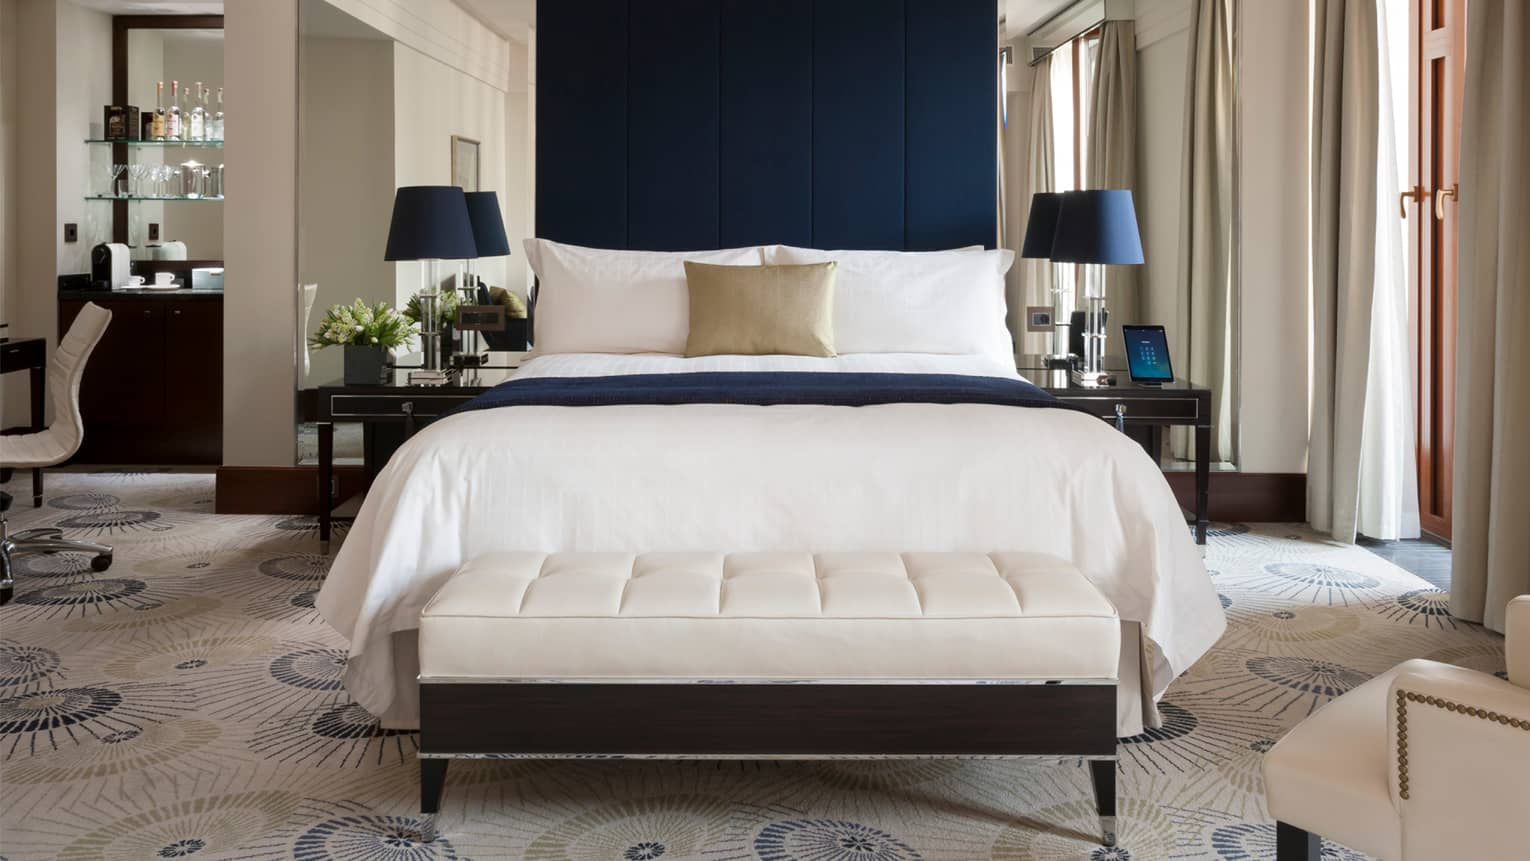 Grand Premier Room white bed and plush bench, dark blue fabric headboard, iPad on nightstand